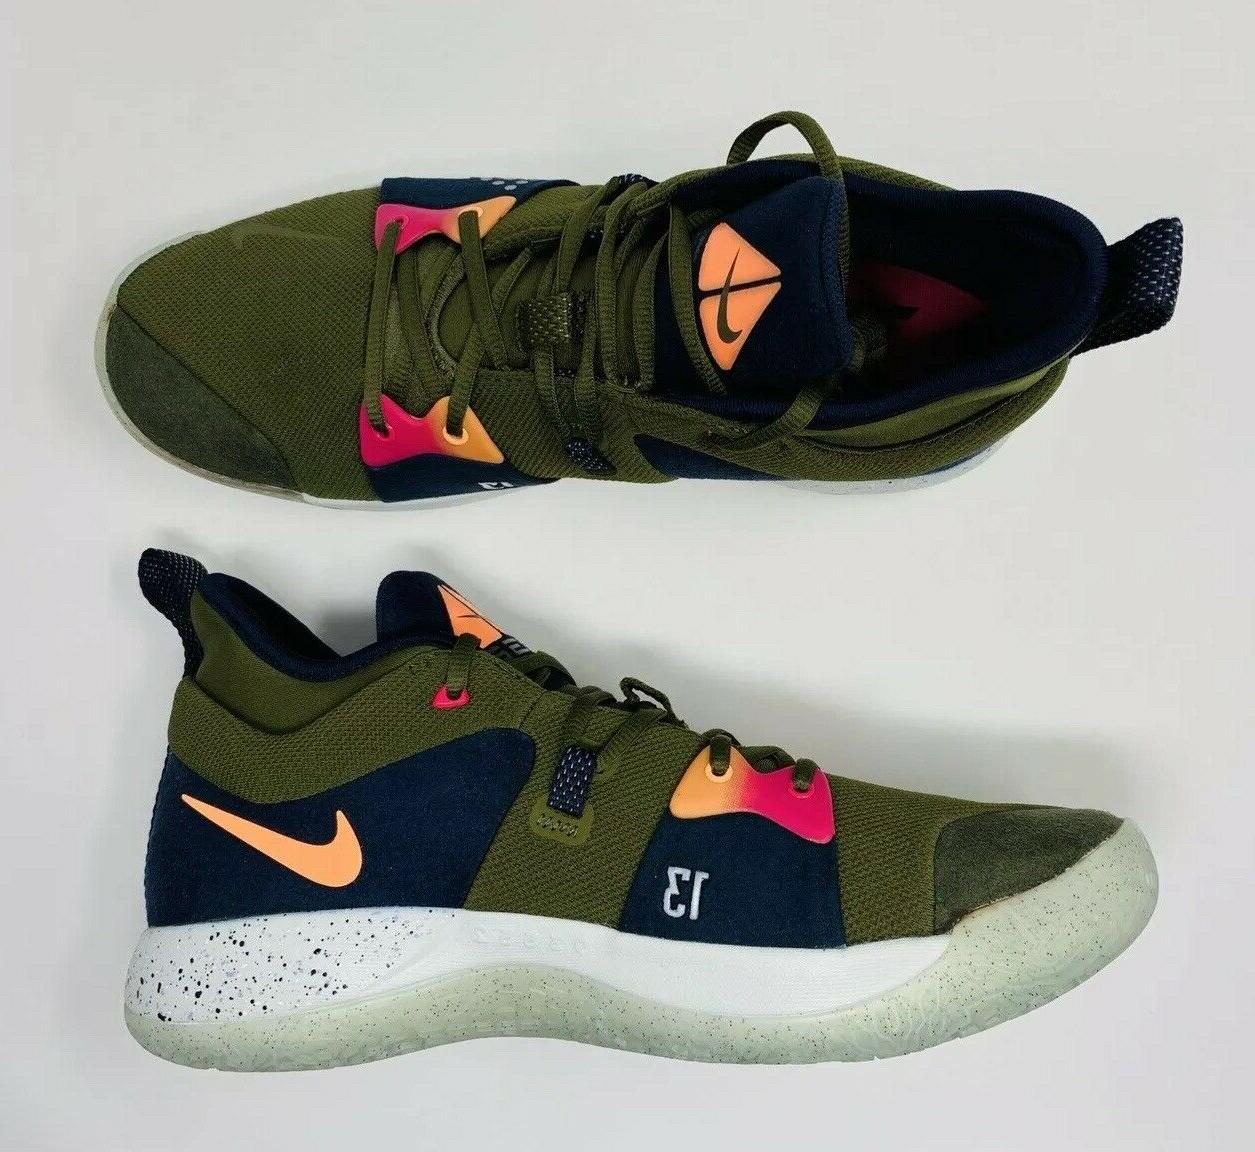 Nike Olive Paul George Basketball Shoes Men's